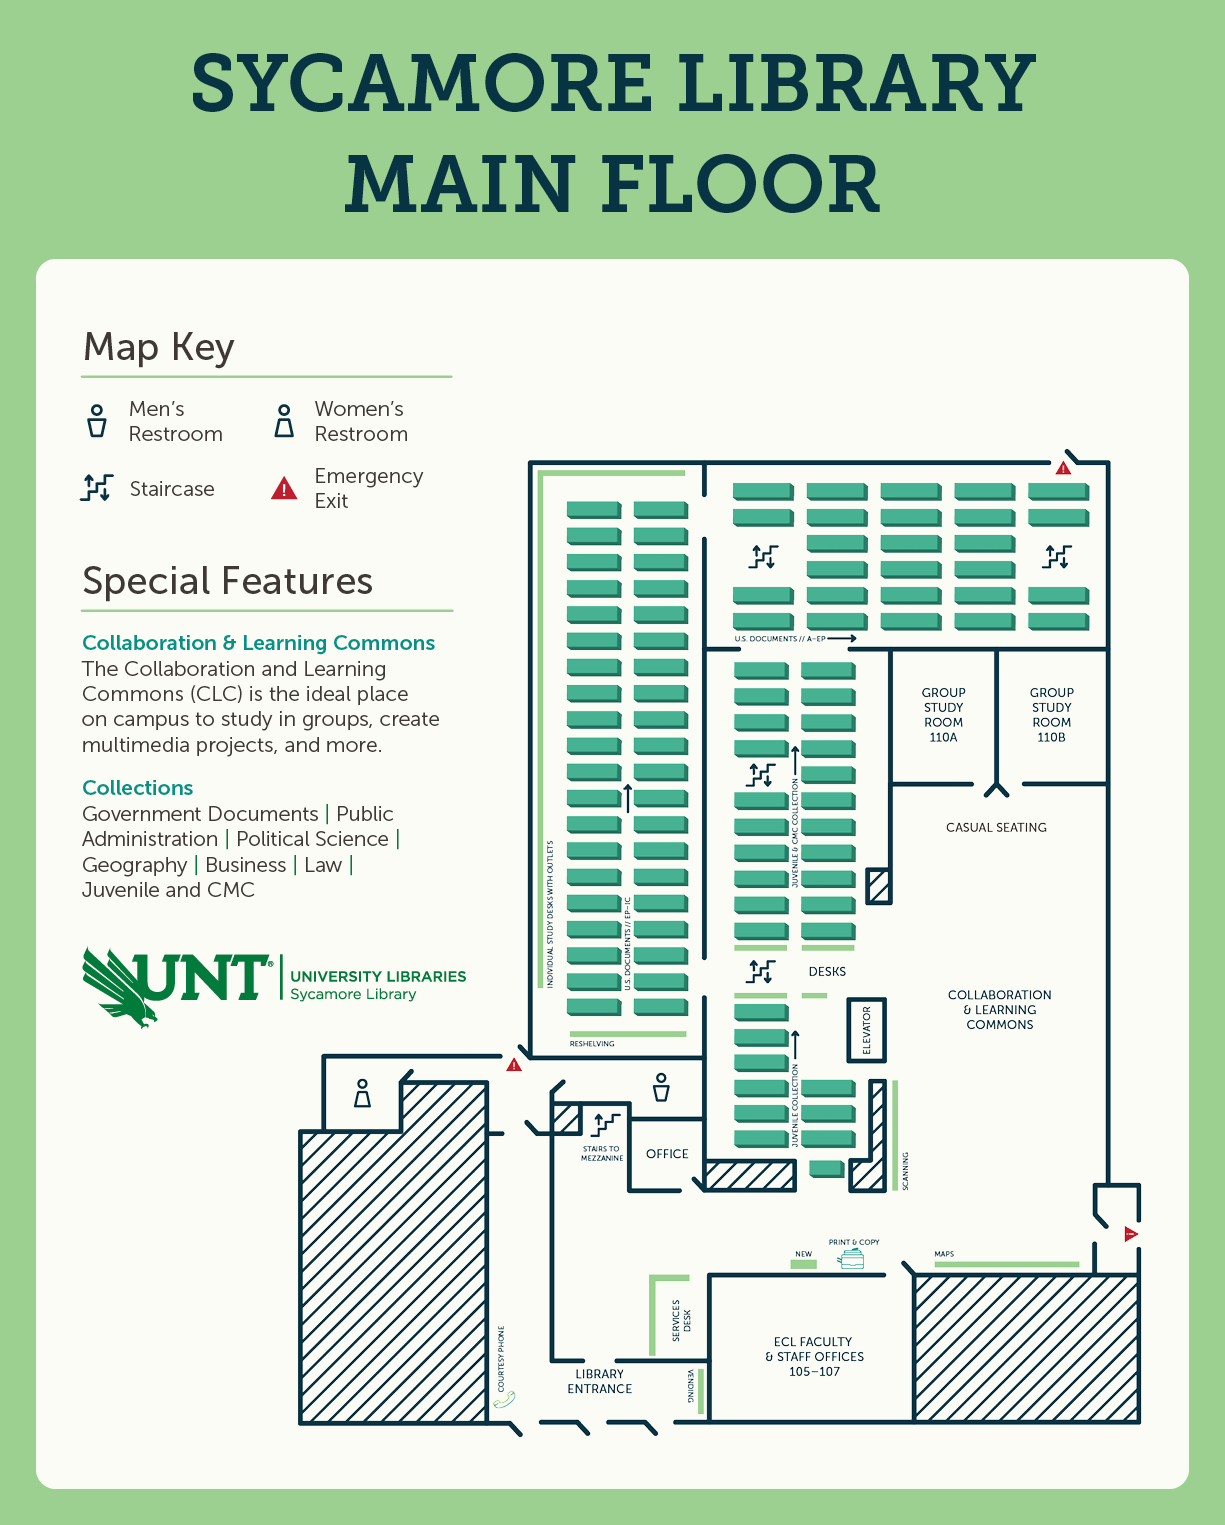 Sycamore Library main floor map